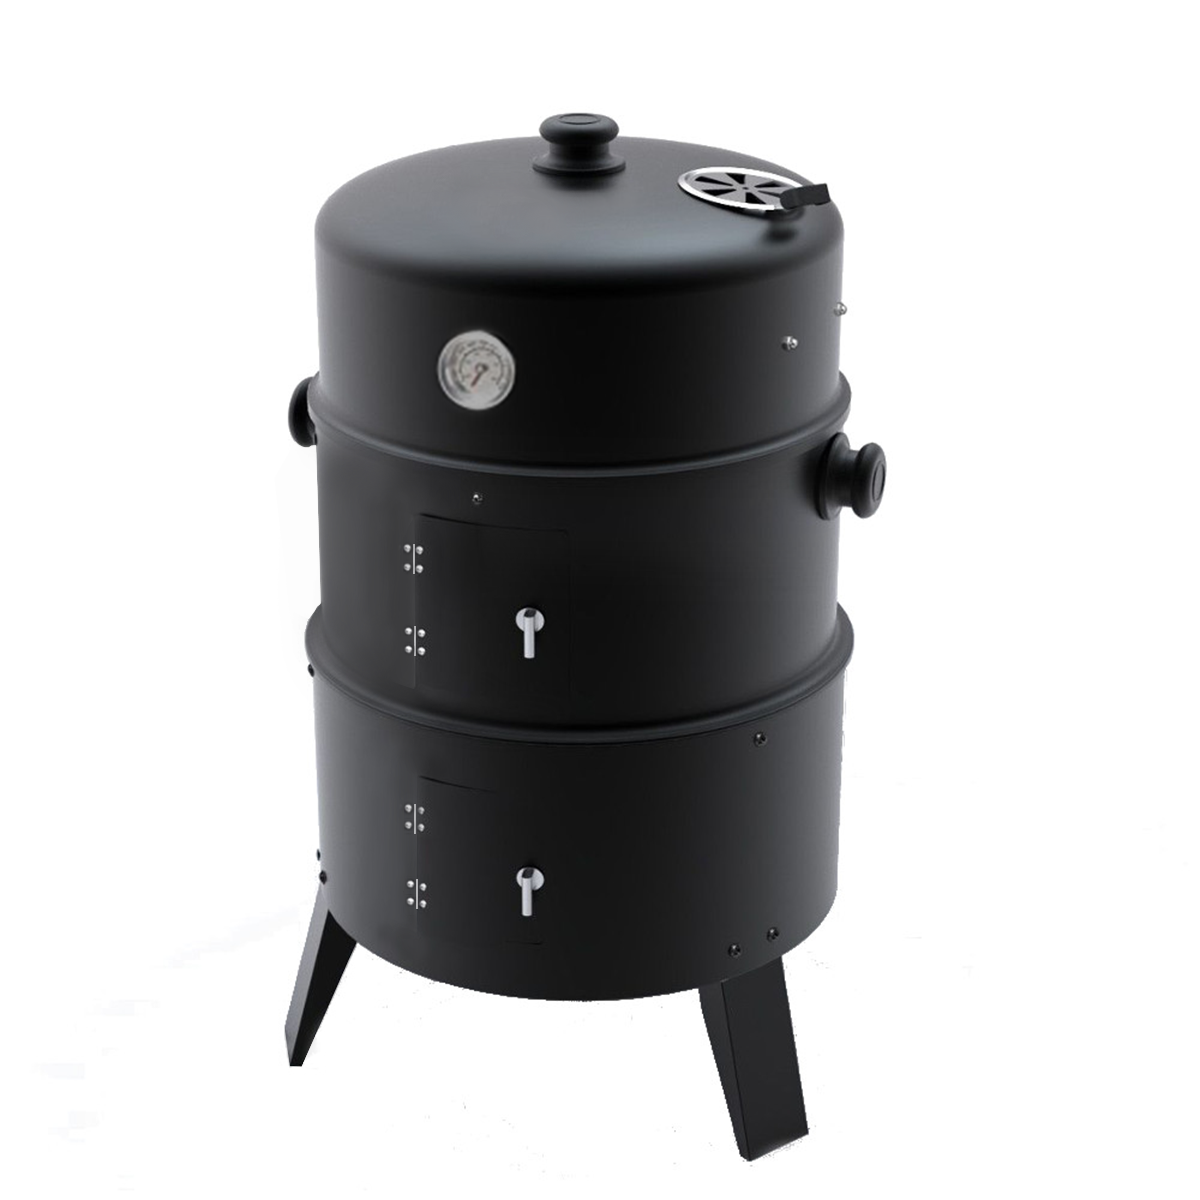 upright outdoor bbq smoker charcoal barbecue grill garden cooker patio drum oven ebay. Black Bedroom Furniture Sets. Home Design Ideas